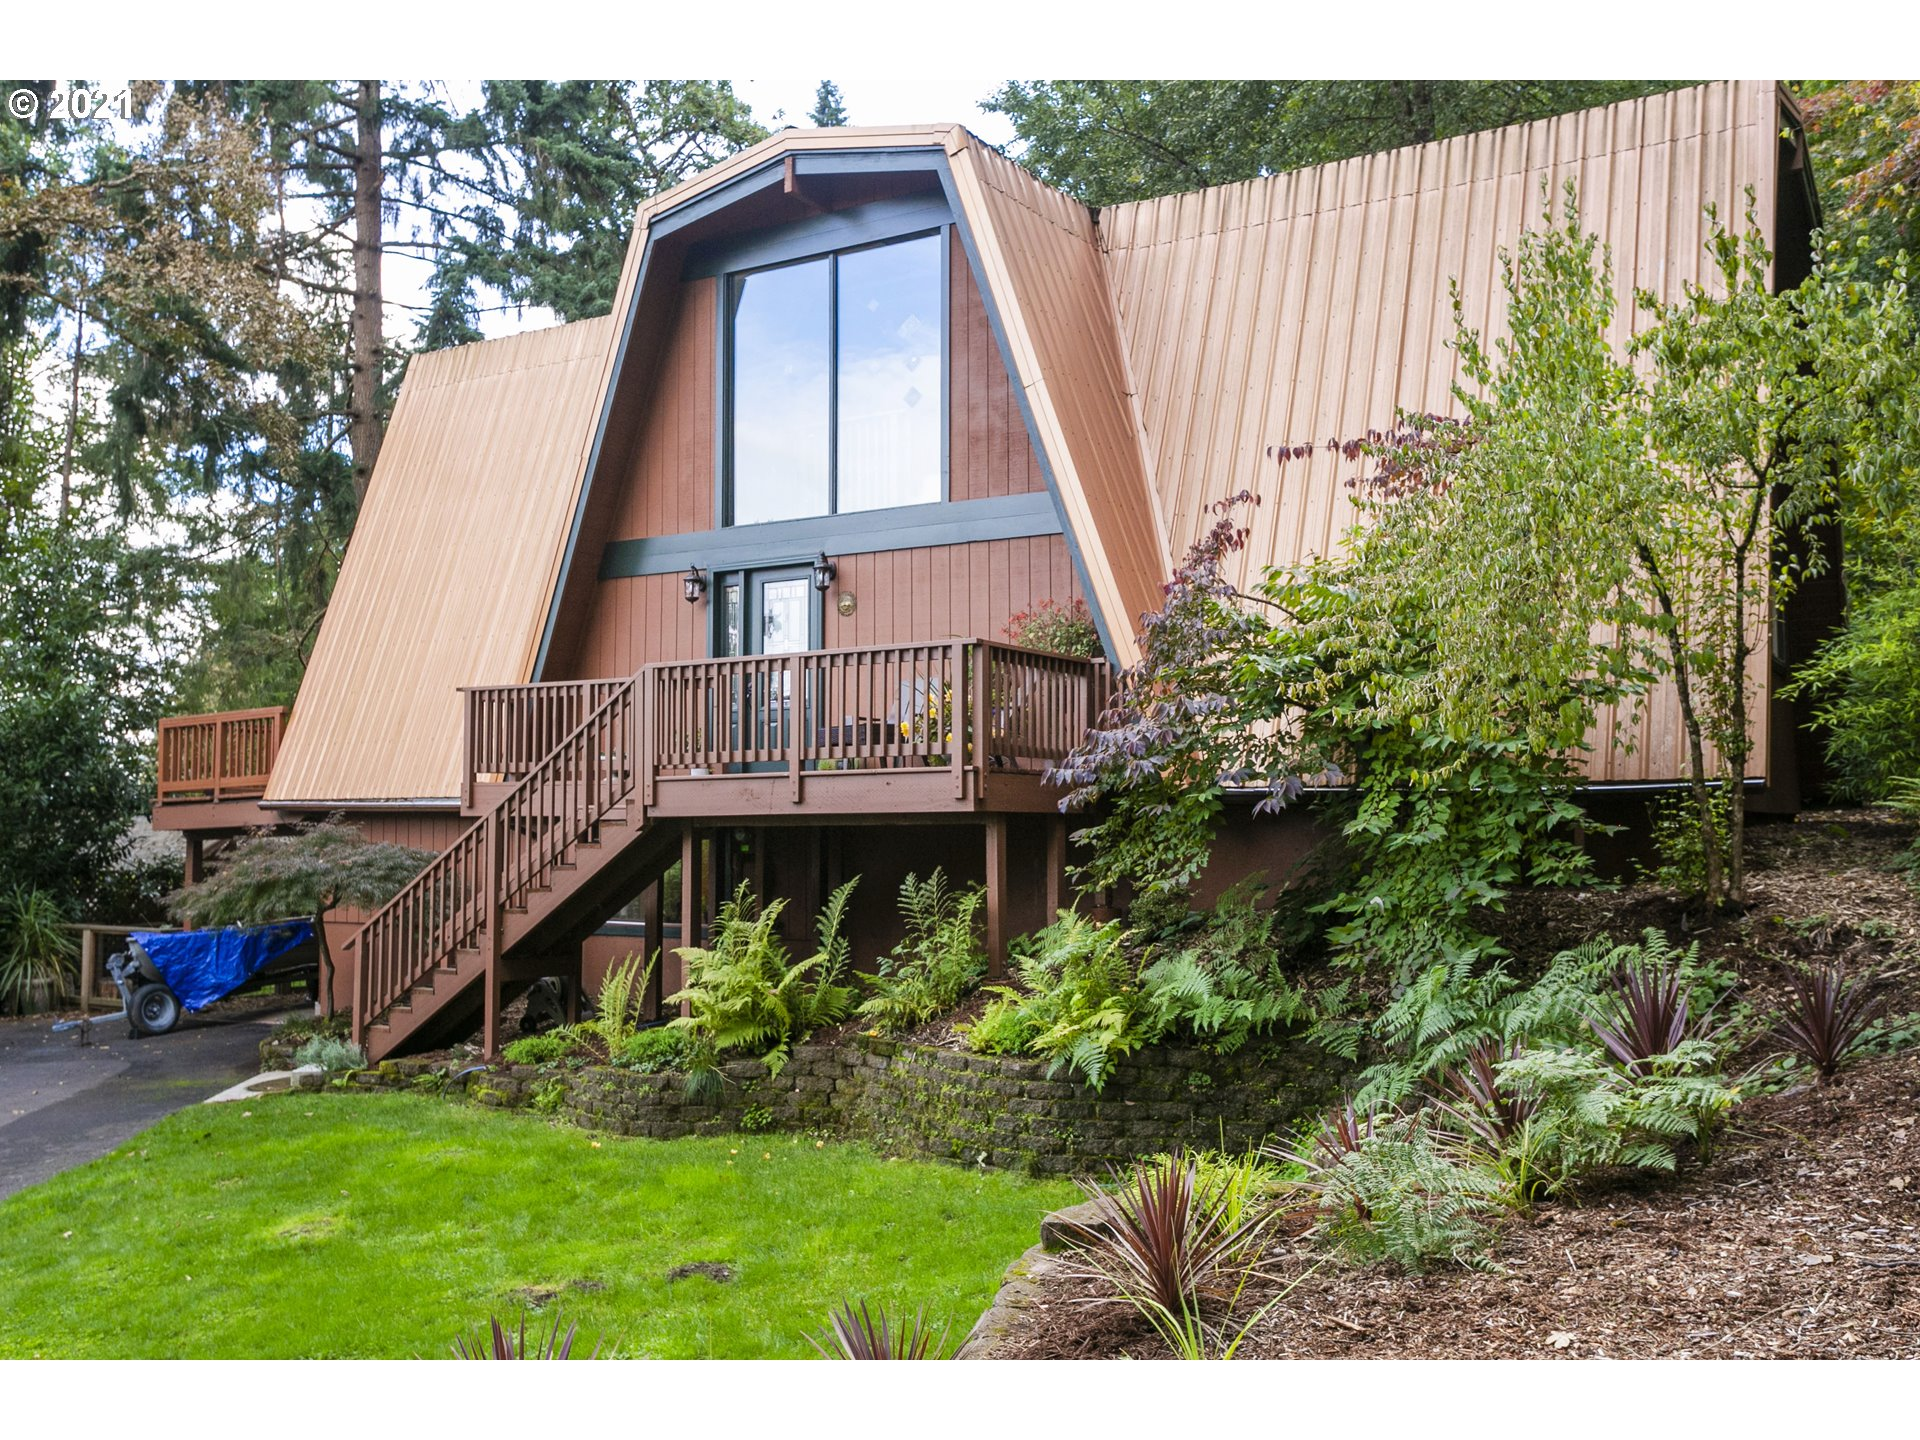 One of a kind in West Linn! Contemporary Chalet nestled on private  1.42 acres, only 2 miles from downtown Lake Oswego! Beautifully updated home includes kitchen w/granite countertops, ss appliances and eating bar. Primary suite w/updated bath. Spacious loft situated perfectly to capture views. Lower level flex space w/bthrm, kitchenette and separate entrance = many possibilities. Multiple decks offer territorial views. Relax every day in a tranquil setting complete w/trails and seasonal creek.